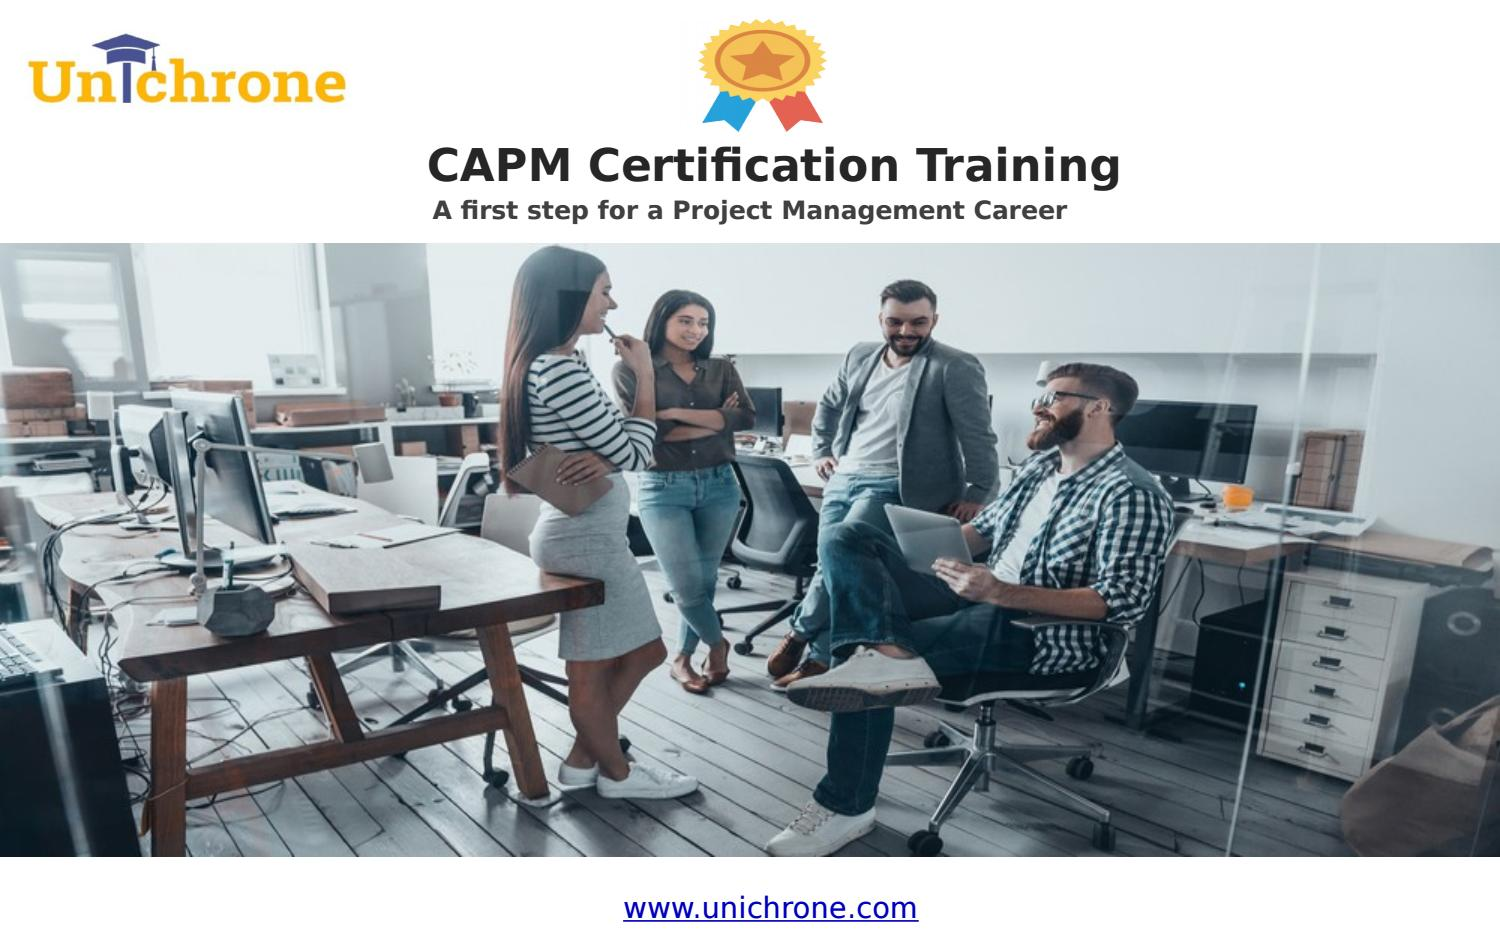 Capm Certification Training Course Unichrone By Unichrone Issuu